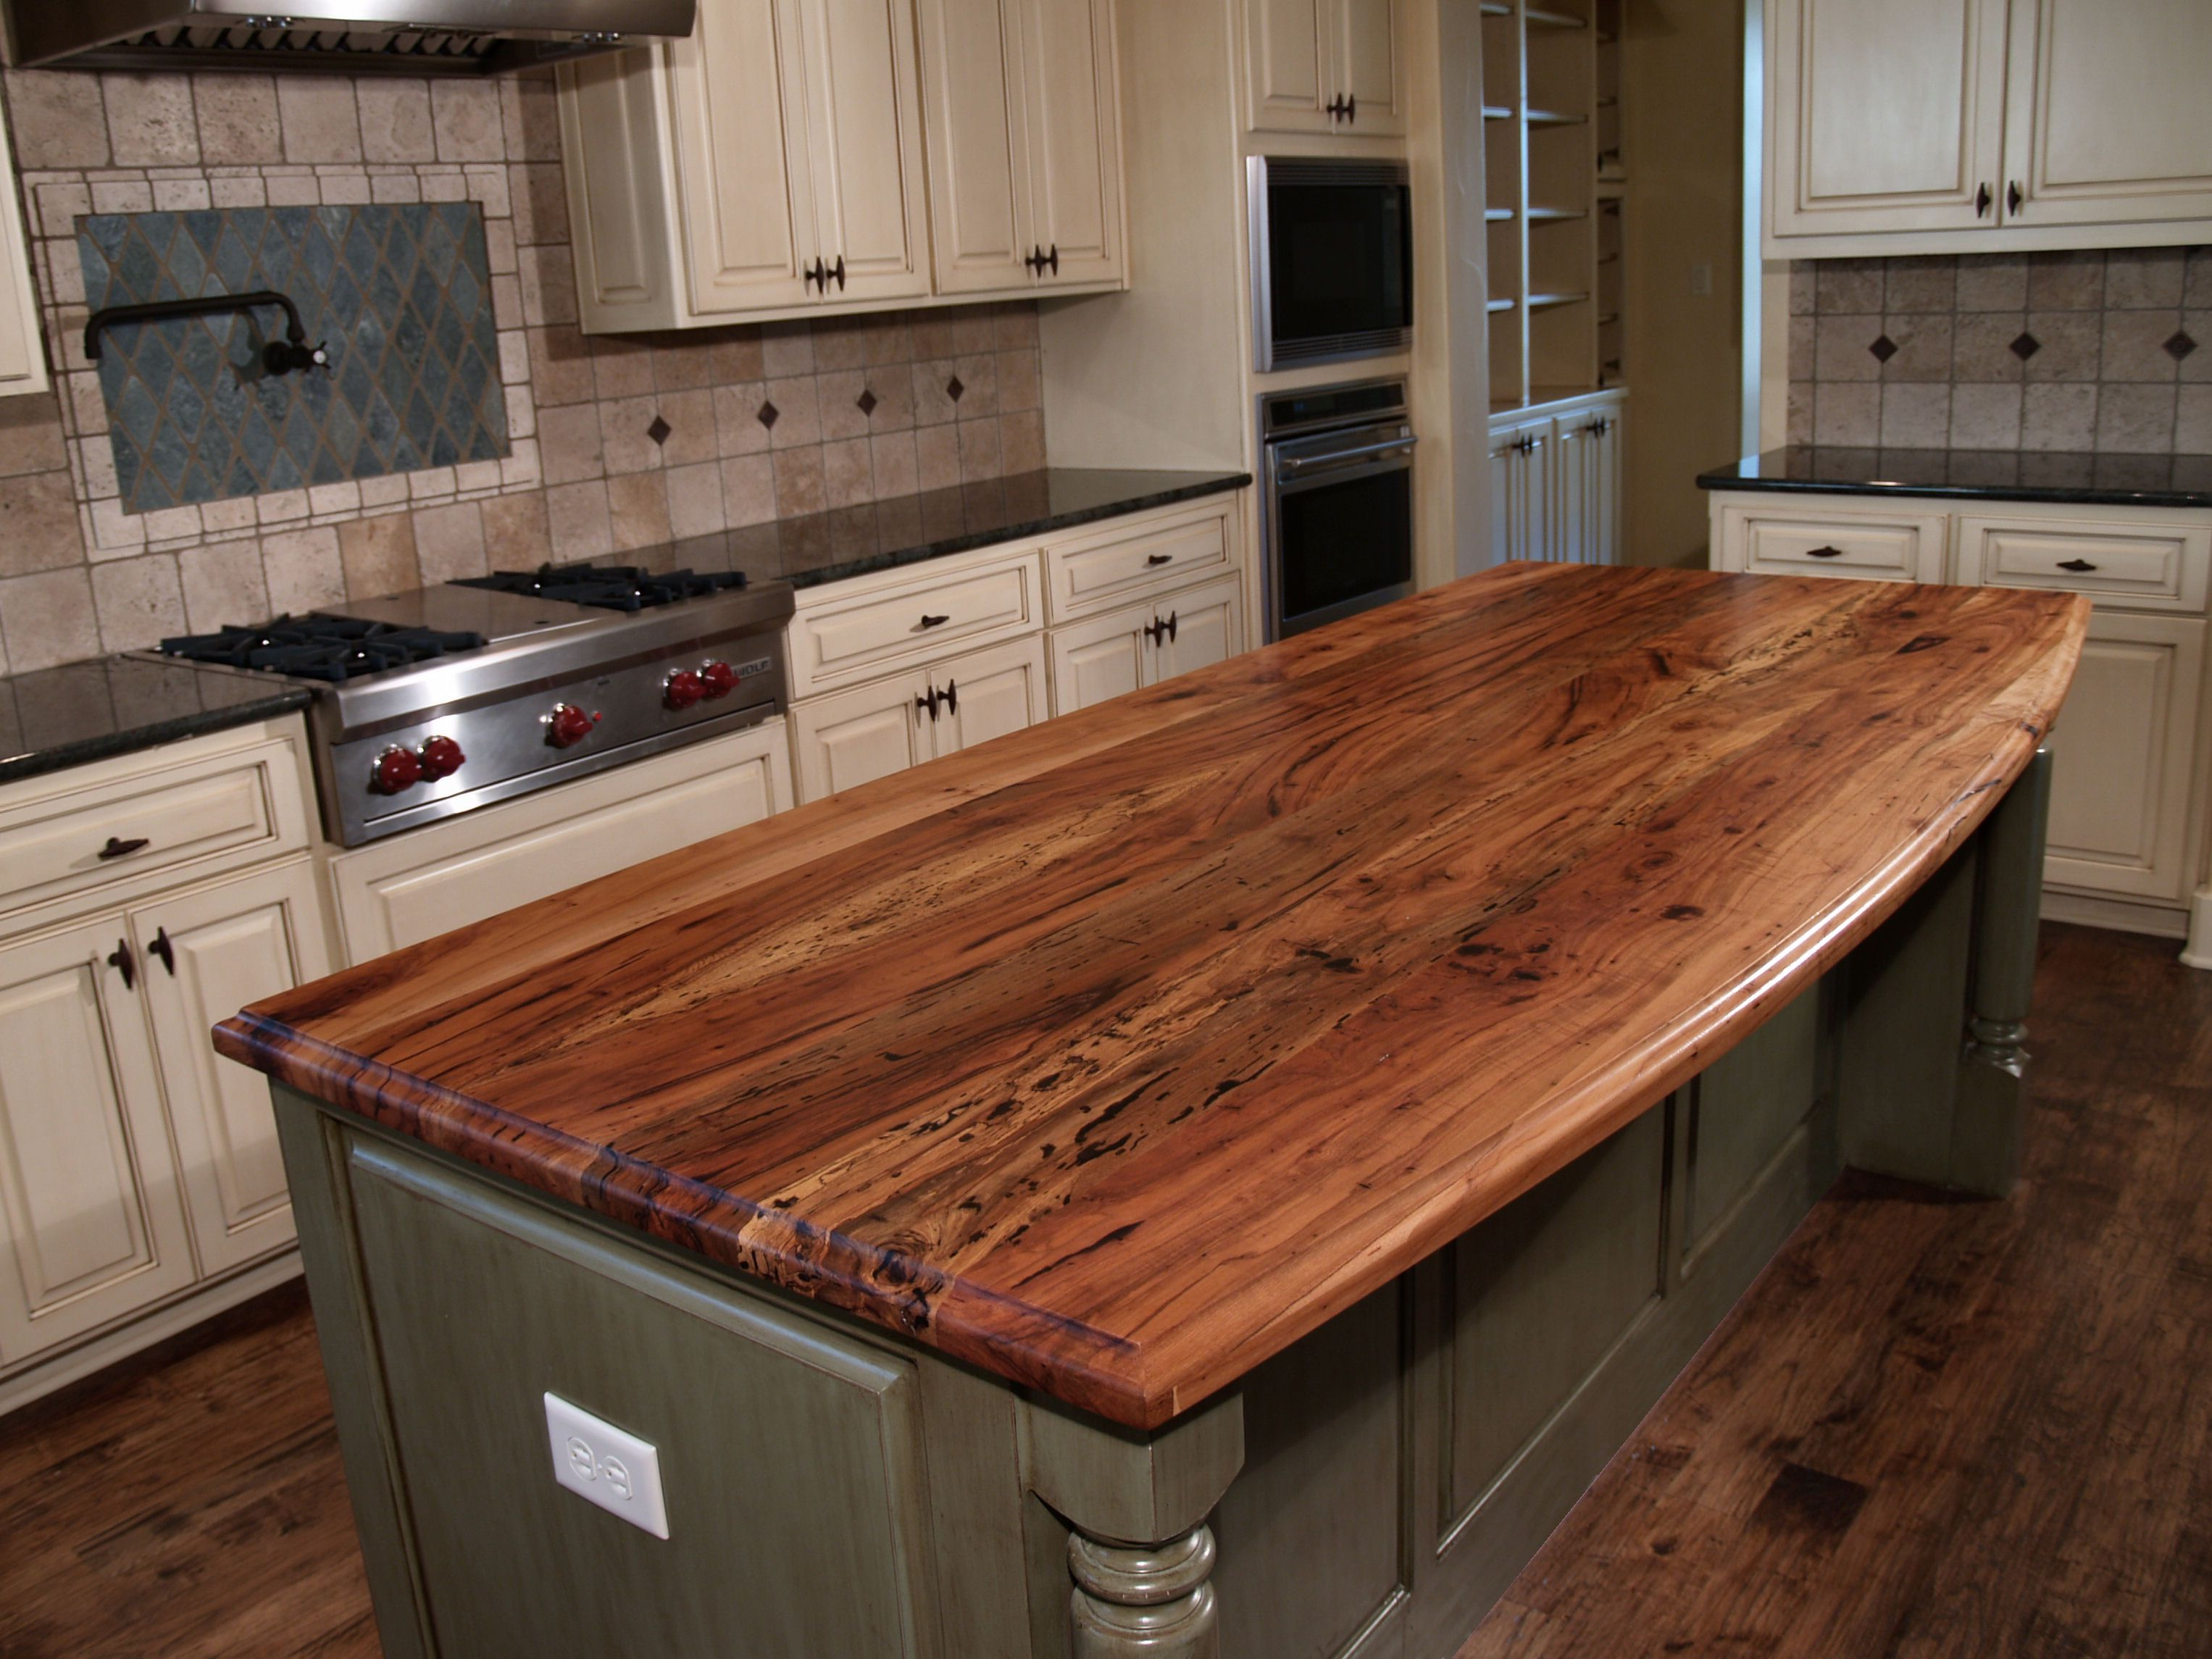 island counter kitchen spalted pecan wood countertop photo gallery by devos 1938